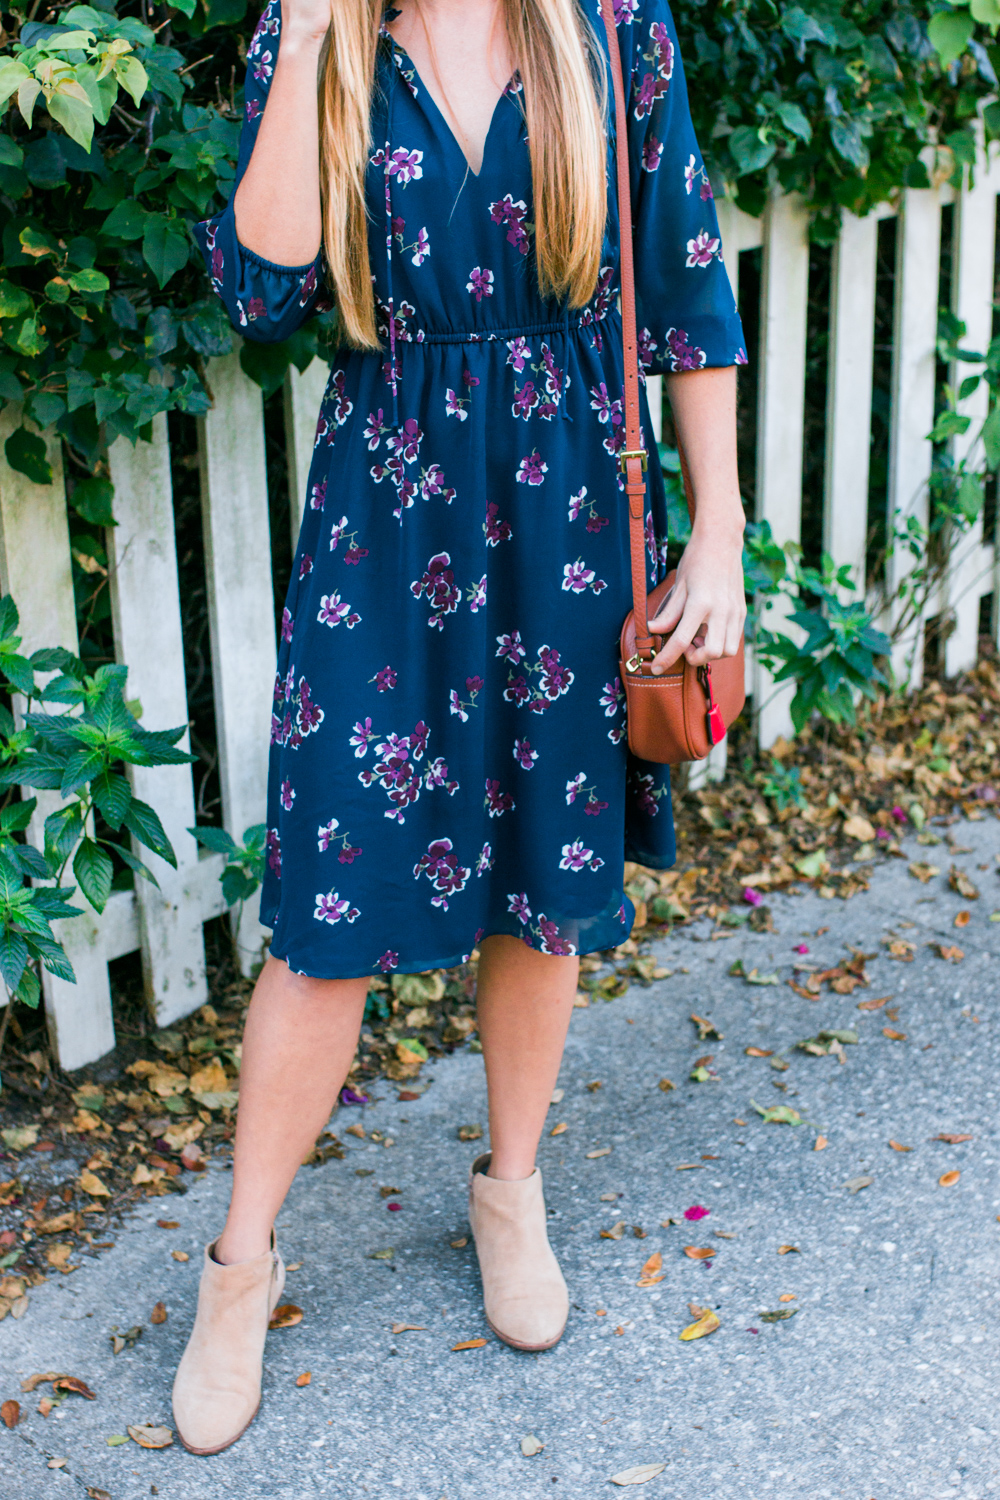 What to Wear in Florida During the Winter / Blue Floral Midi Dress / Long Sleeve Midi Dress with Ankle Boots / J.Crew Leather Bag / Panama Hat / Midi Dress for Work / More on www.sunshinestyleblog.com #mididress #dresses #floral #blogger #fashionblogger #styletip